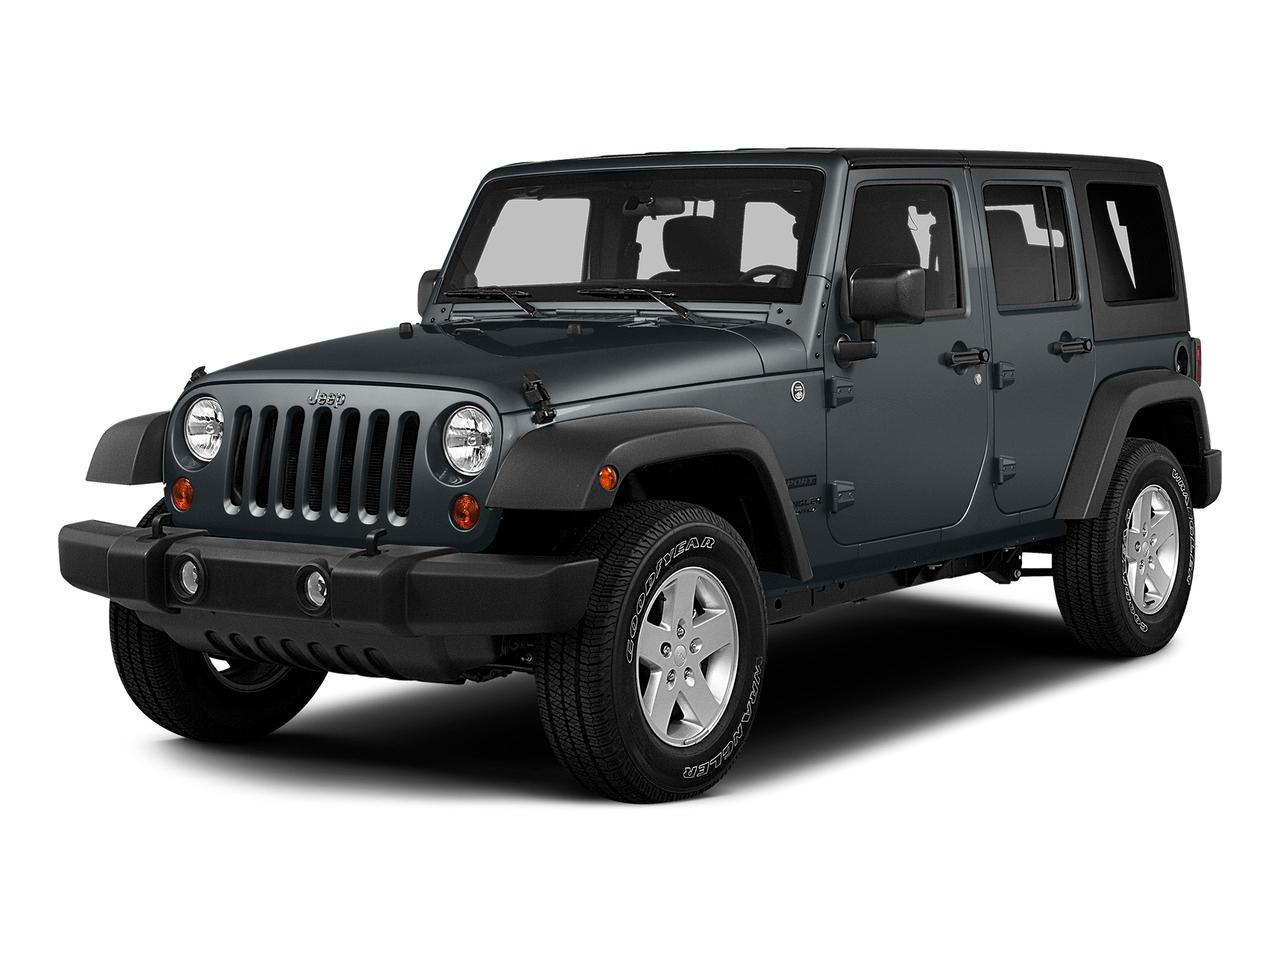 2015 Jeep Wrangler Unlimited Vehicle Photo in Spokane, WA 99207